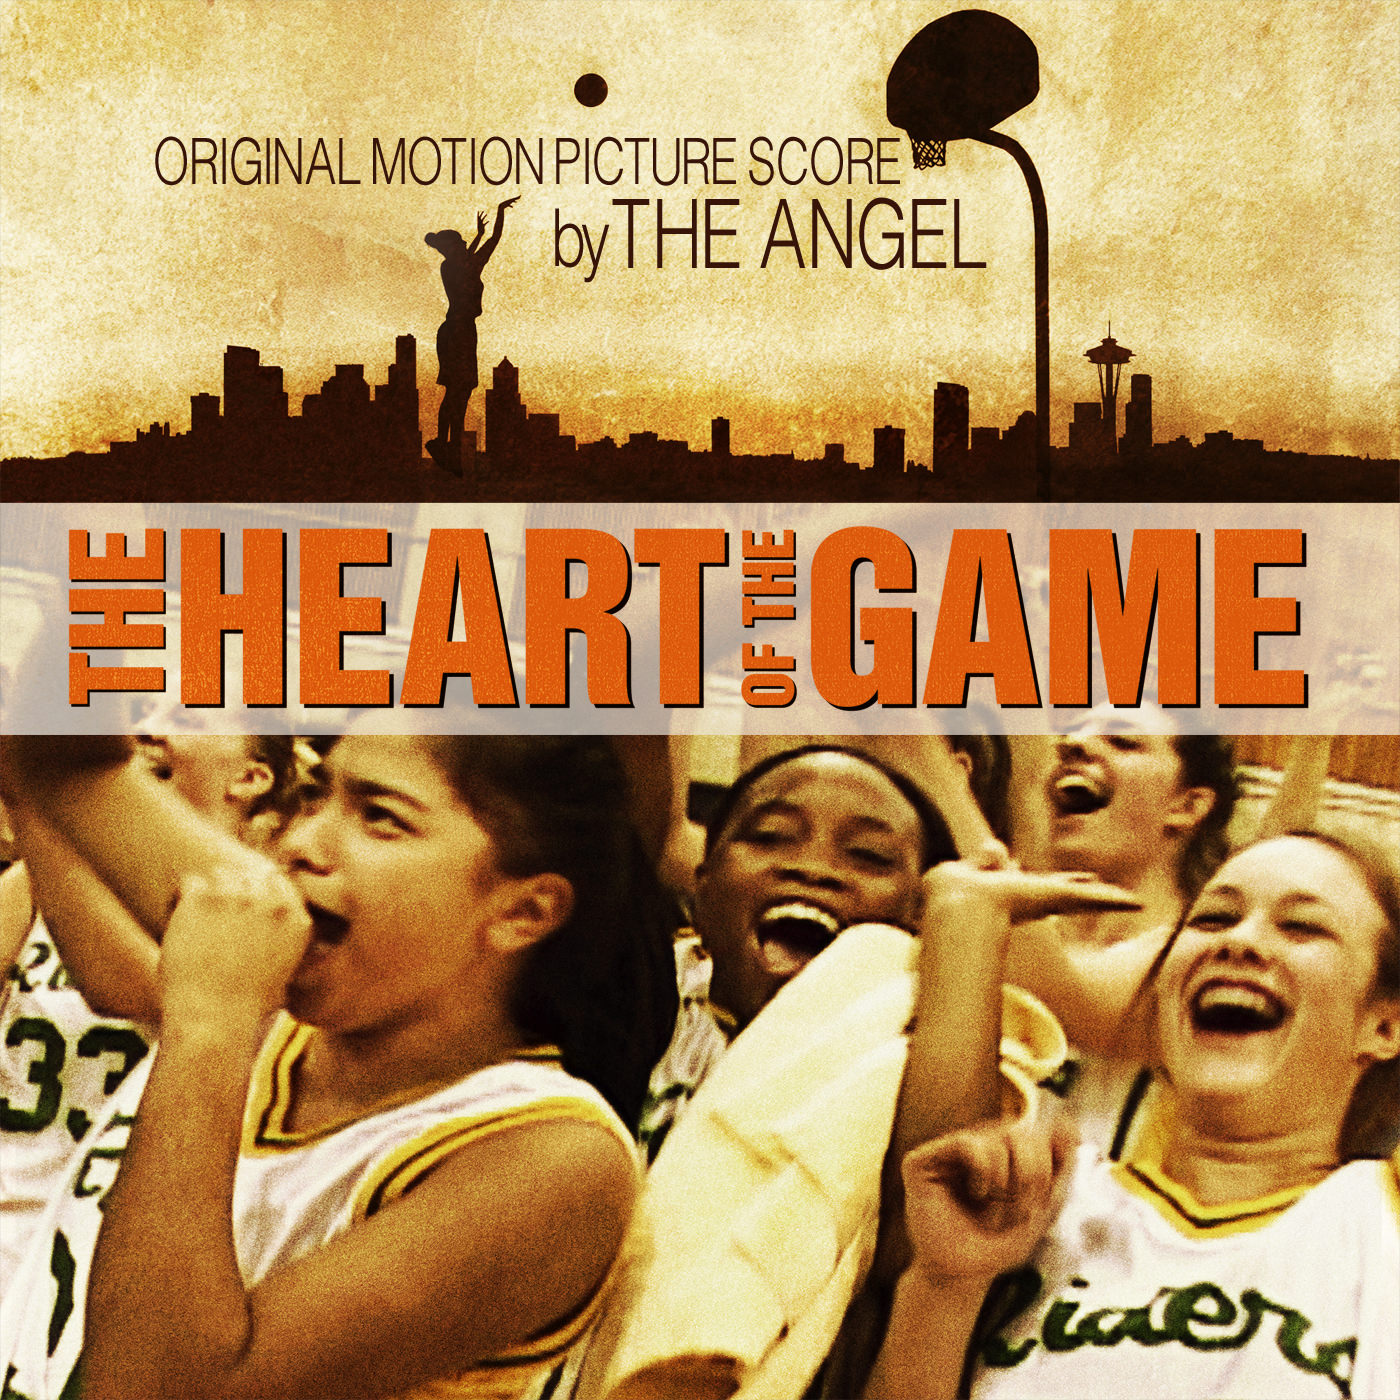 The Angel - The Heart Of The Game (Original Motion Picture Score) - album